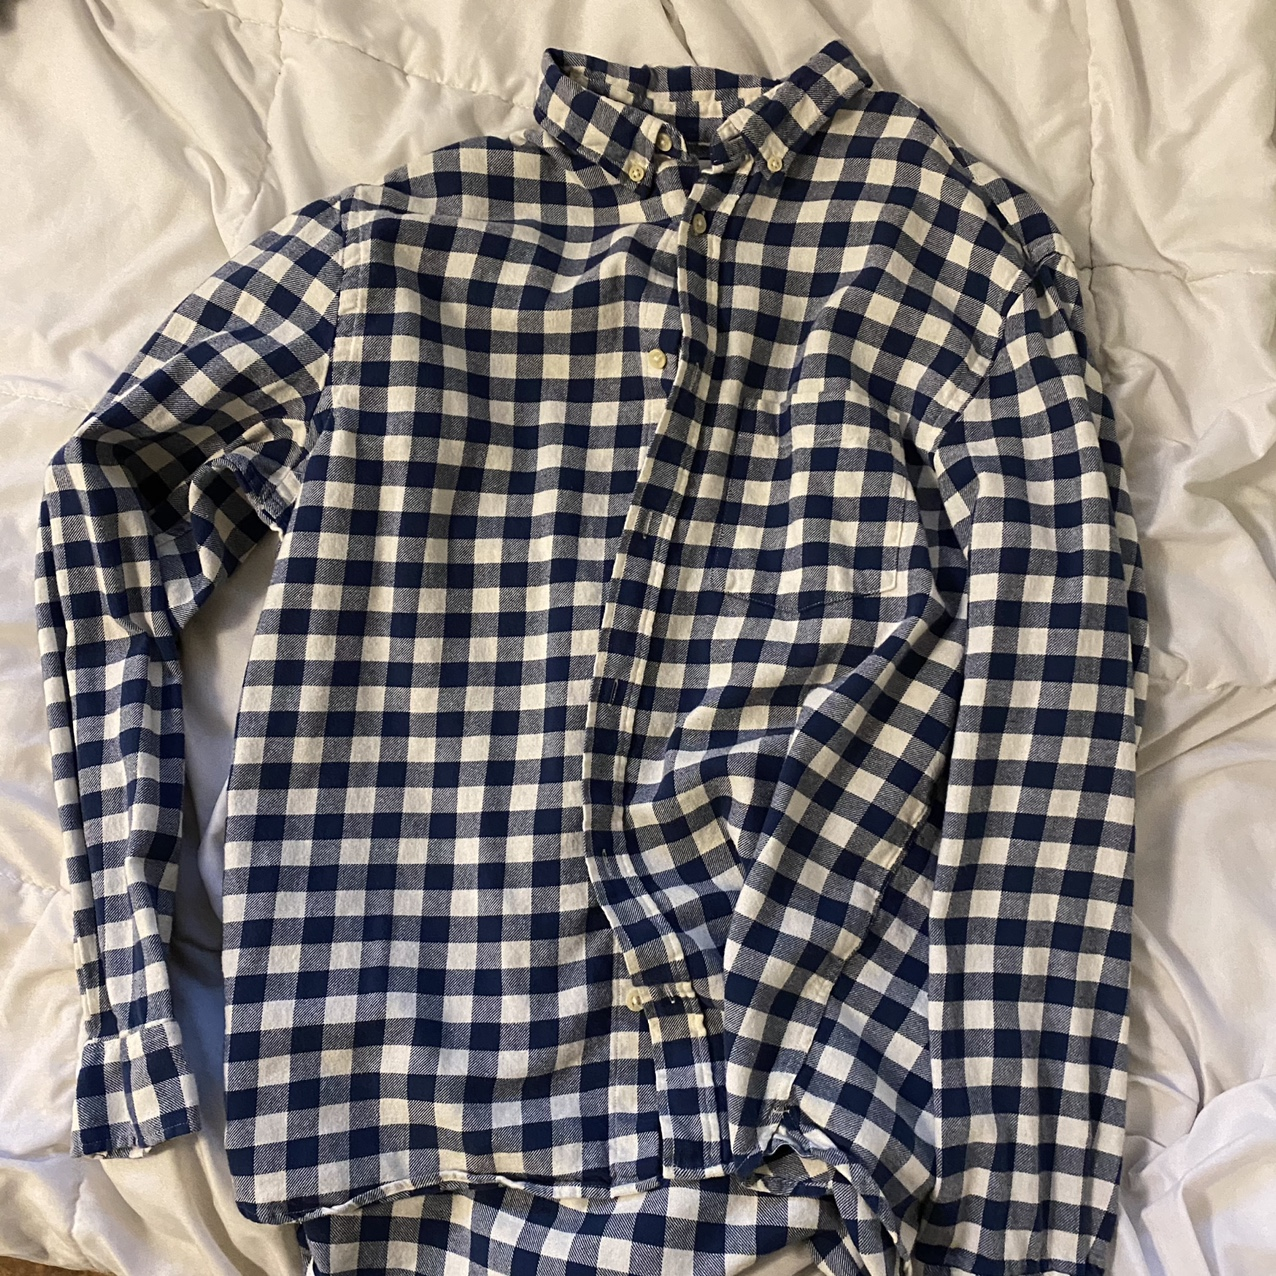 Product Image 1 - checkered white and blue flannel,